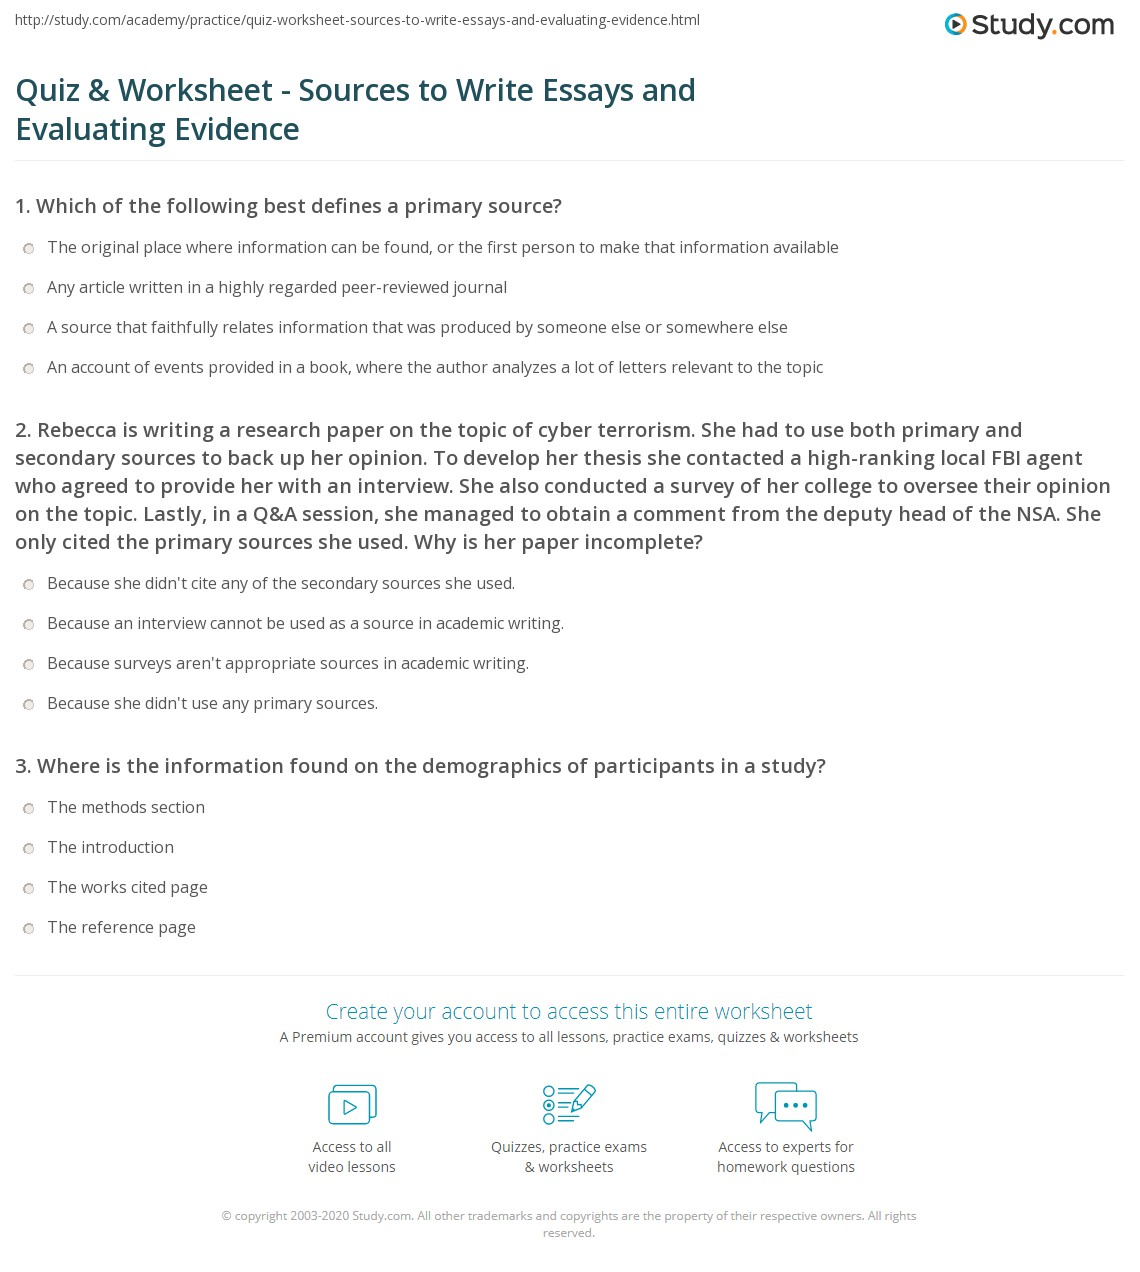 Quiz & Worksheet Sources To Write Essays And Evaluating Evidence